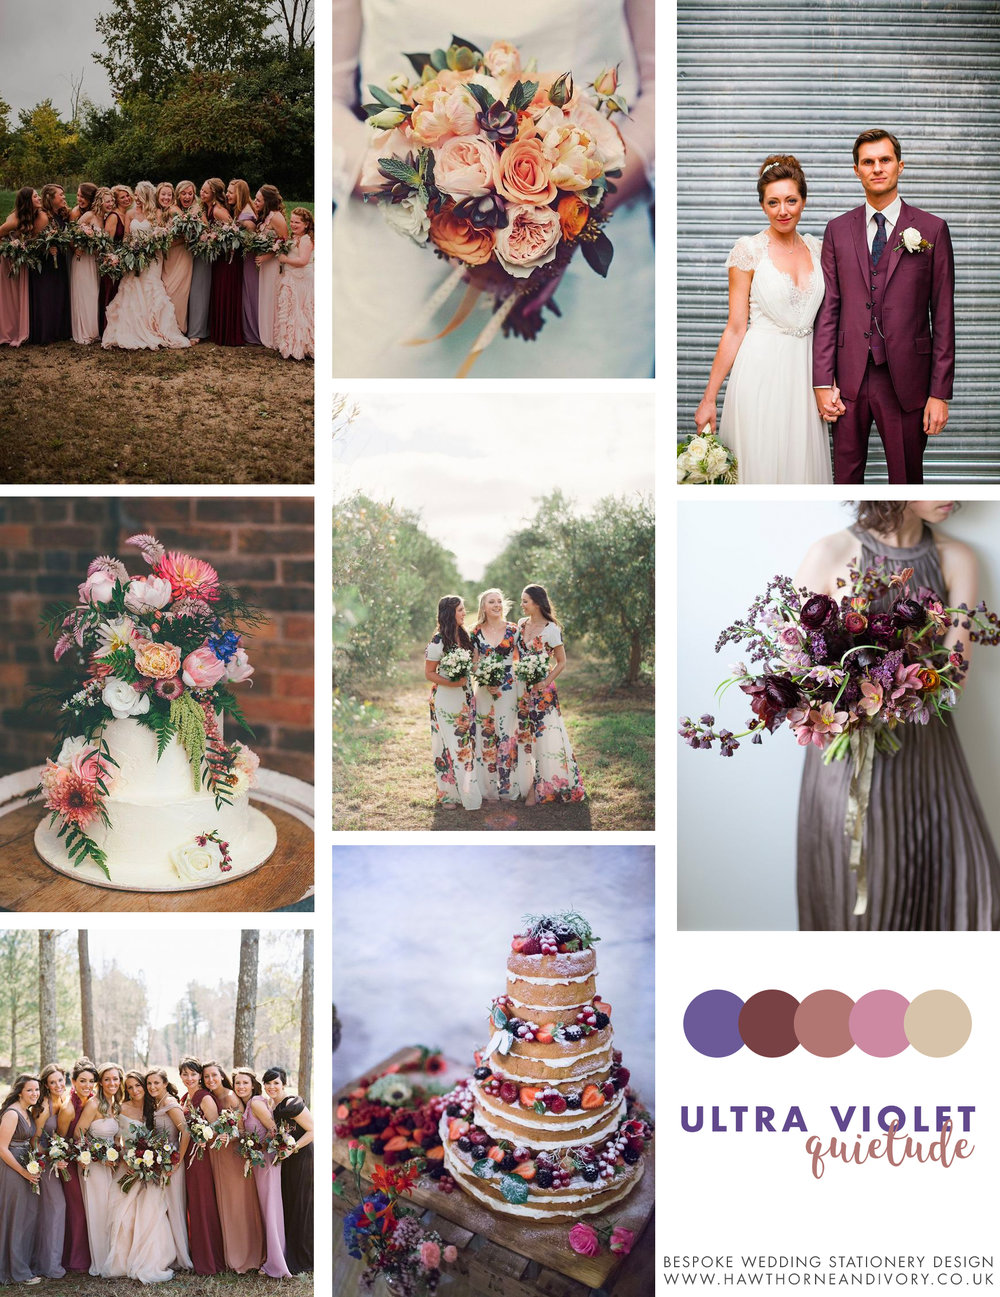 ultra violet pantone quietude wedding colour palette.jpg